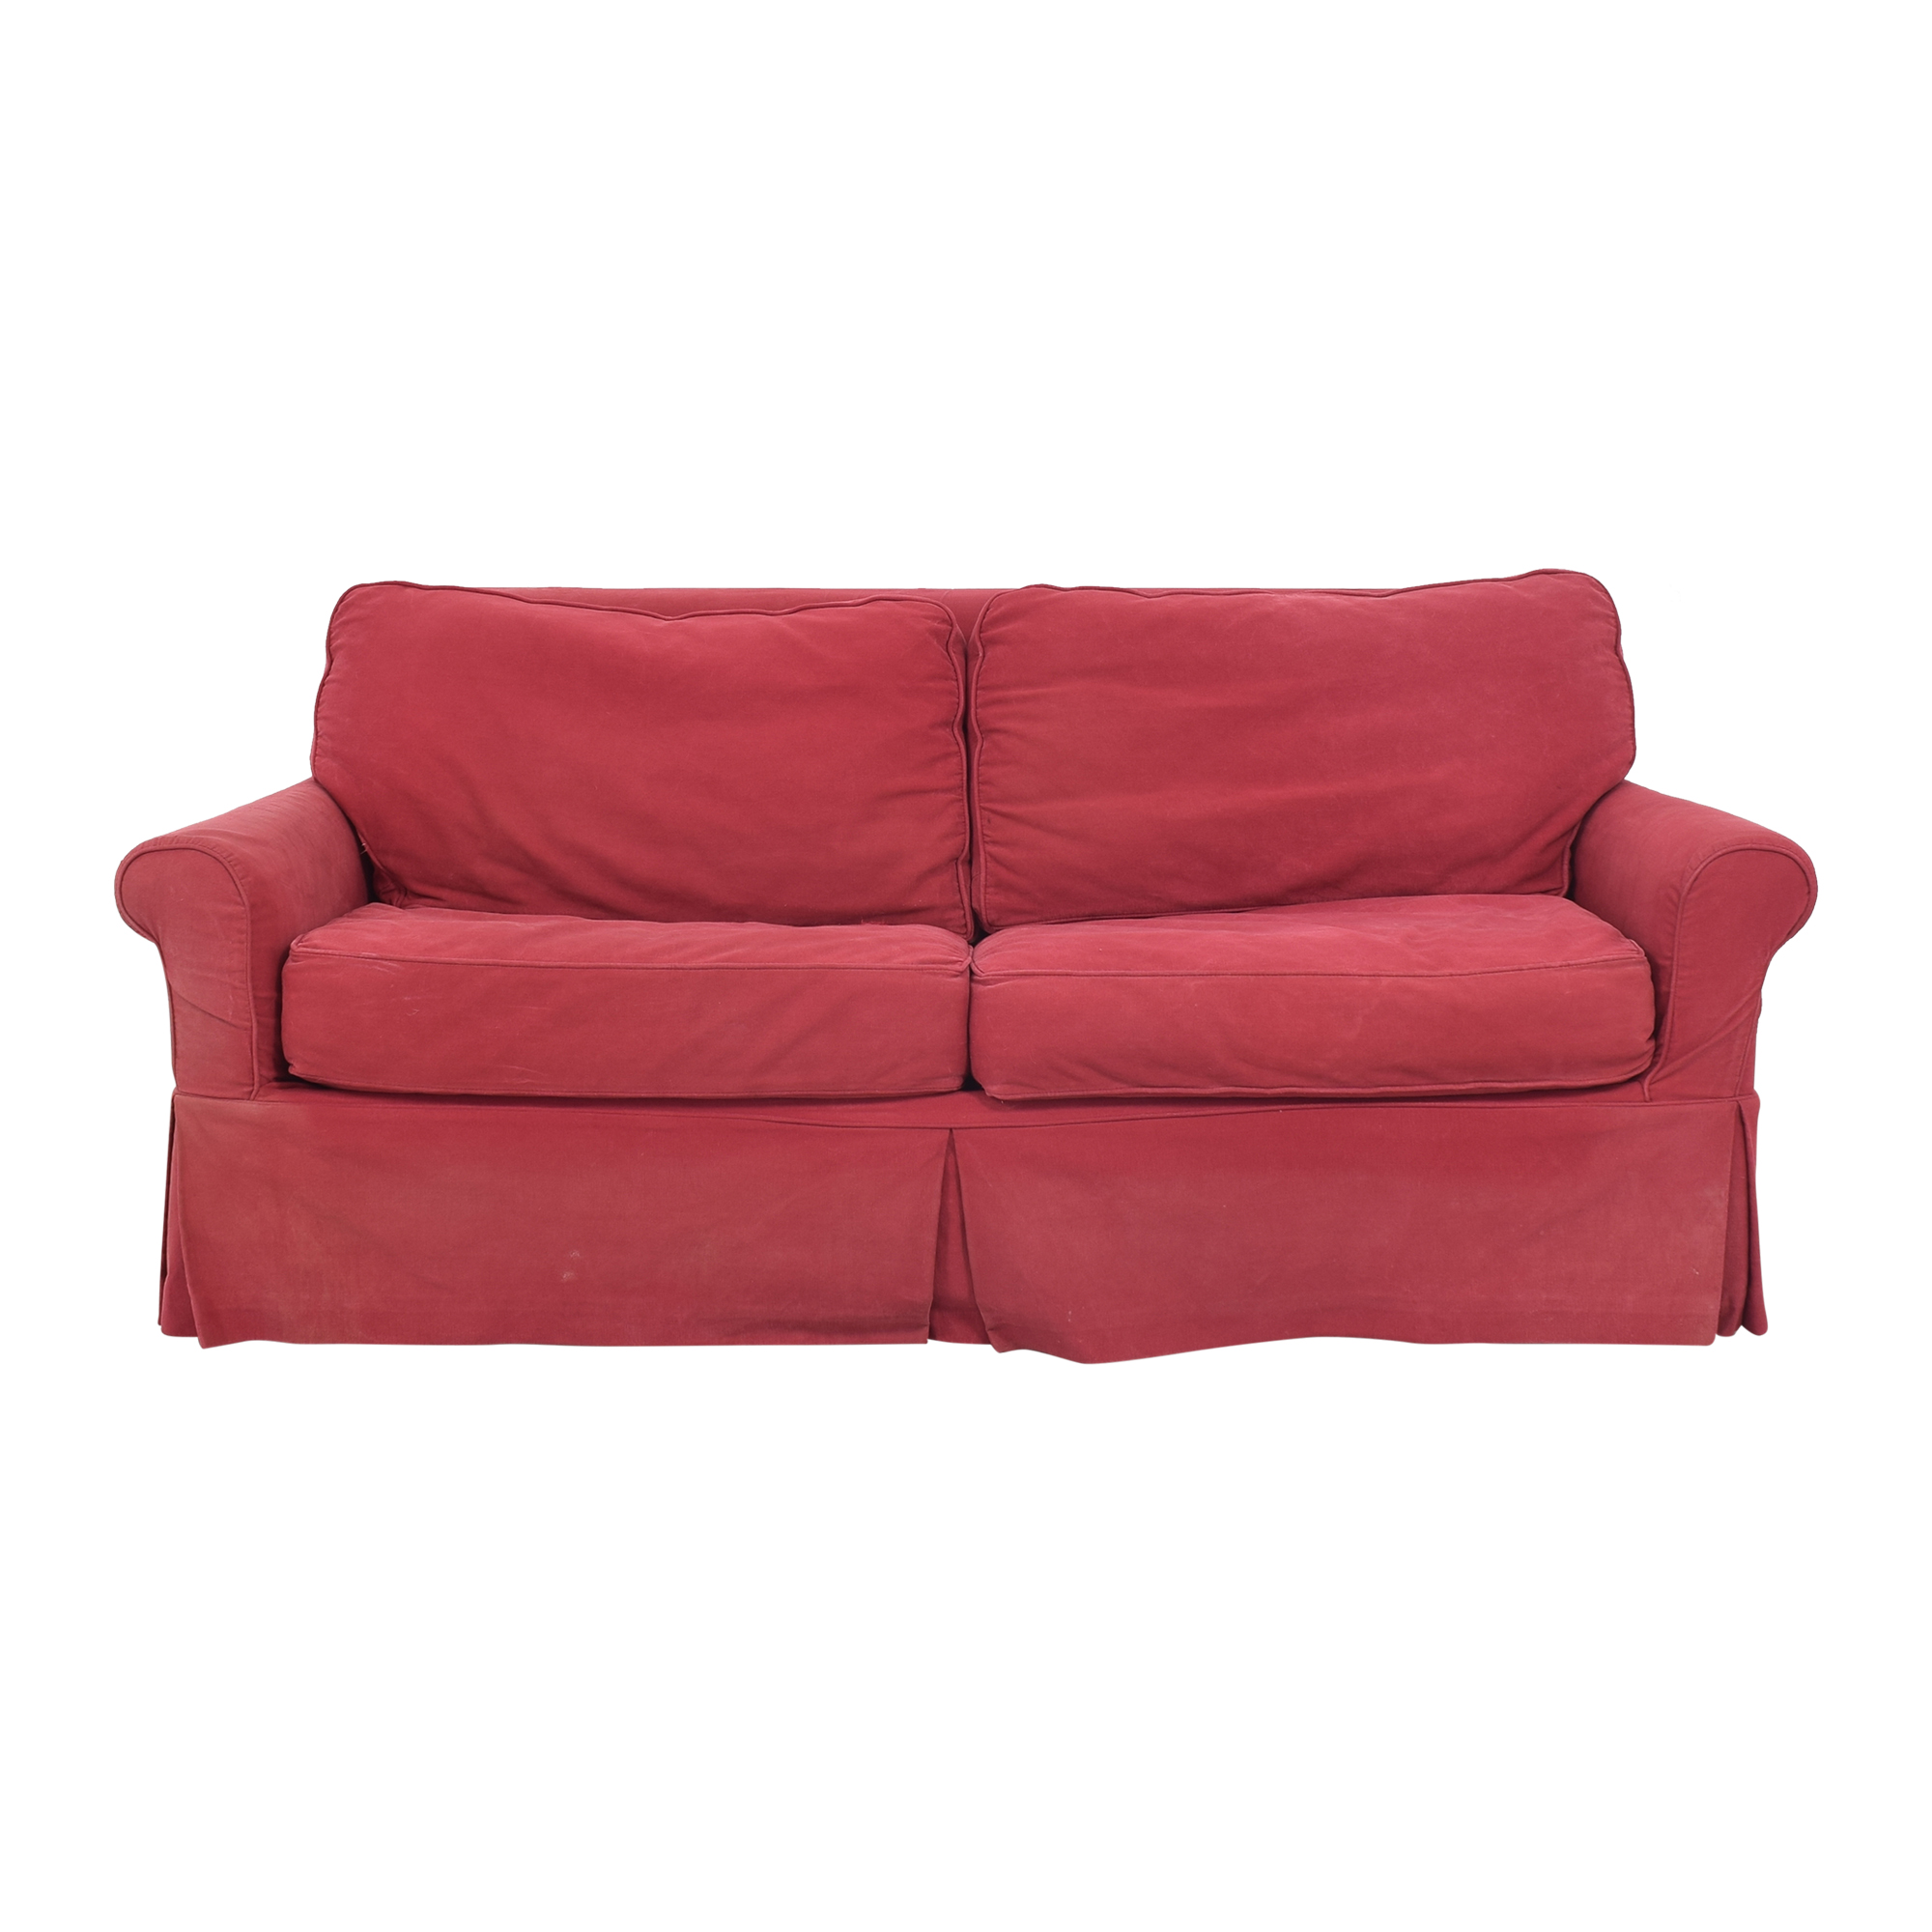 Crate & Barrel Crate & Barrel Roll Arm Slipcovered Sleeper Sofa coupon